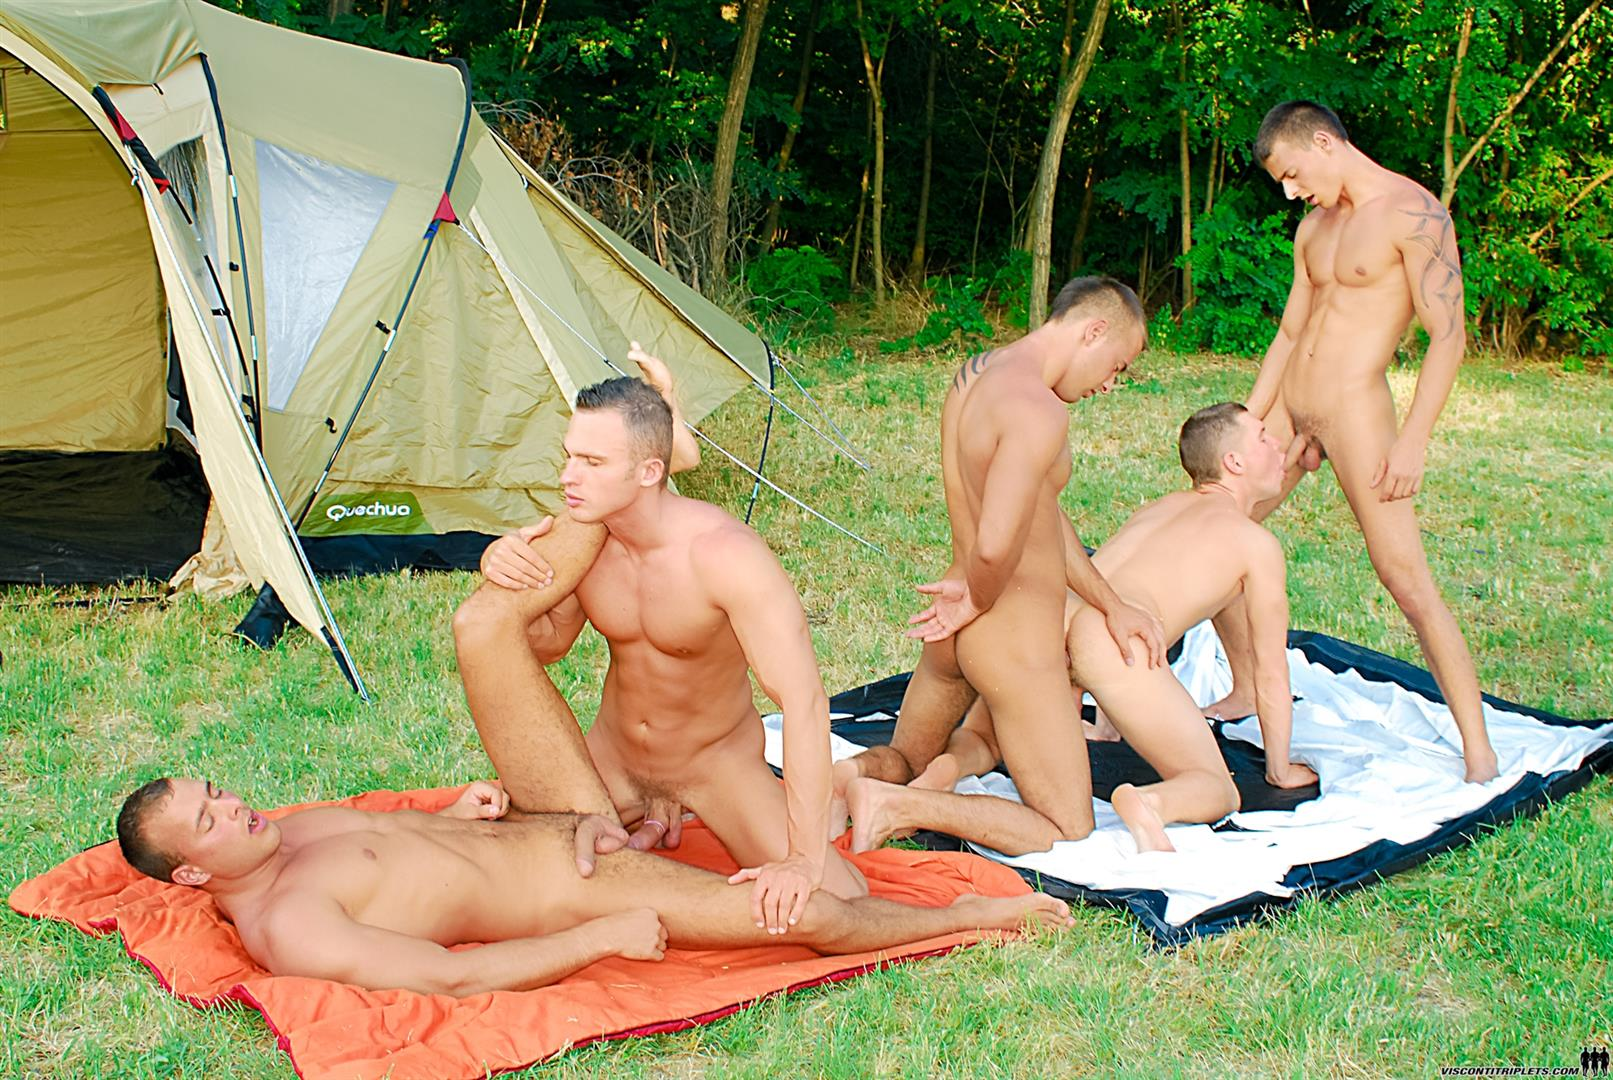 Visconti-Triplets-Jason-Visconti-Jimmy-Visconti-Joey-Visconti-Giuseppe-Pardi-Fucking-During-A-Camping-Trip-Amateur-Gay-Porn-14 Visconti Triplets Tag Team Some Muscle Ass While Camping